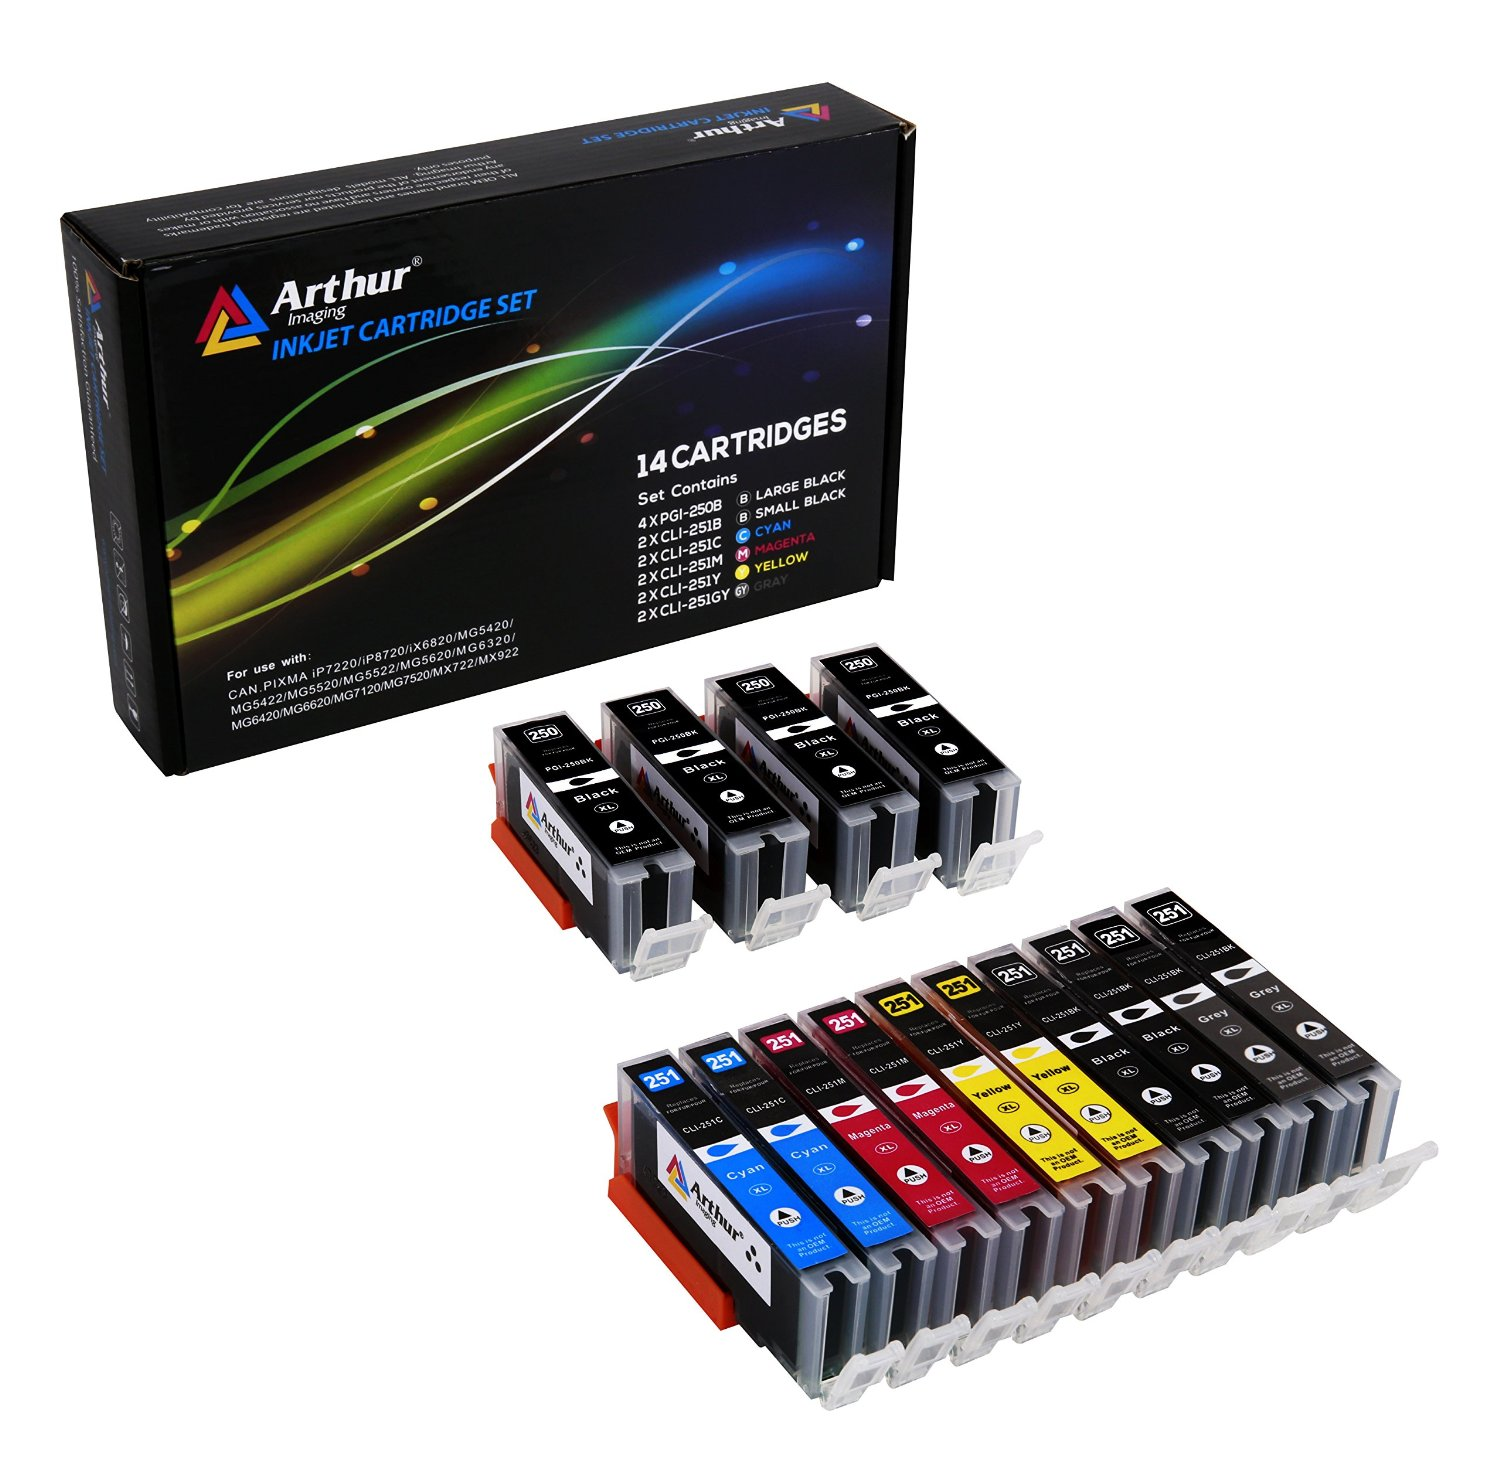 Arthur Imaging Compatible Ink Cartridge Replacement for Canon PGI-250XL CLI-251XL (4 Large Black, 2 Small Black, 2 Cyan, 2 Yellow, 2 Magenta, 2 Gray, 14-Pack)